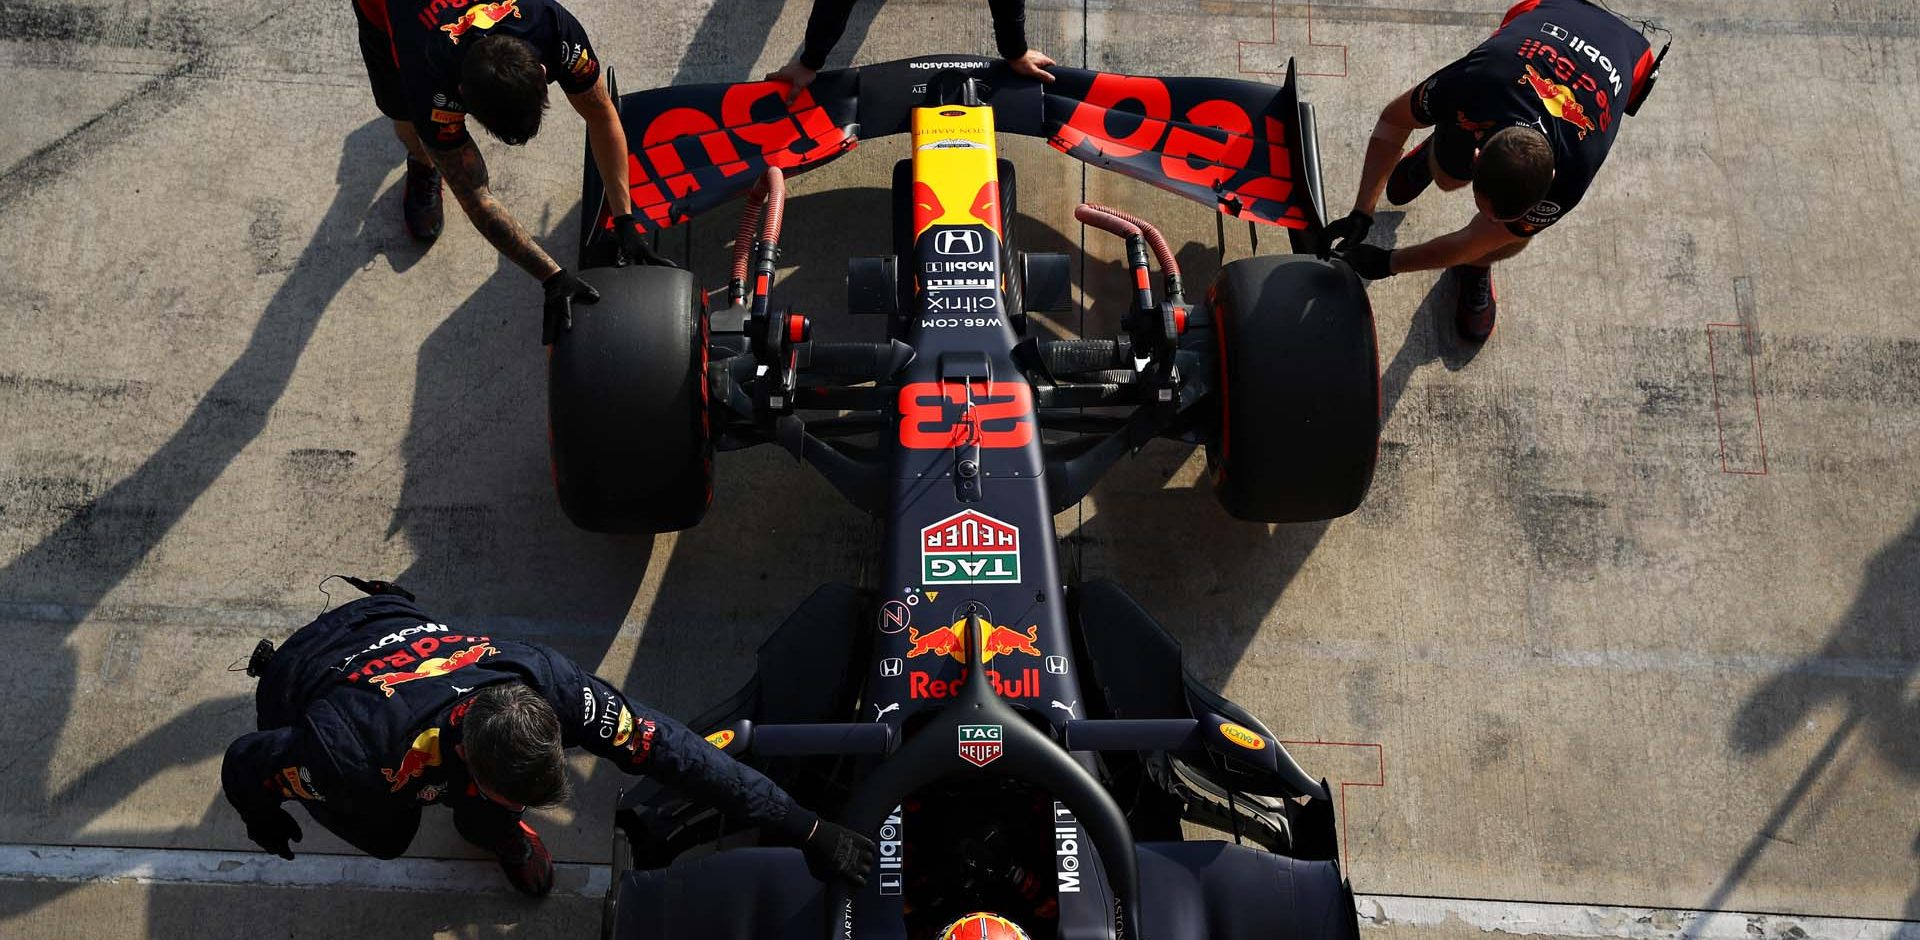 IMOLA, ITALY - OCTOBER 31: Alexander Albon of Thailand driving the (23) Aston Martin Red Bull Racing RB16 is pushed back into the garage during qualifying ahead of the F1 Grand Prix of Emilia Romagna at Autodromo Enzo e Dino Ferrari on October 31, 2020 in Imola, Italy. (Photo by Mark Thompson/Getty Images)